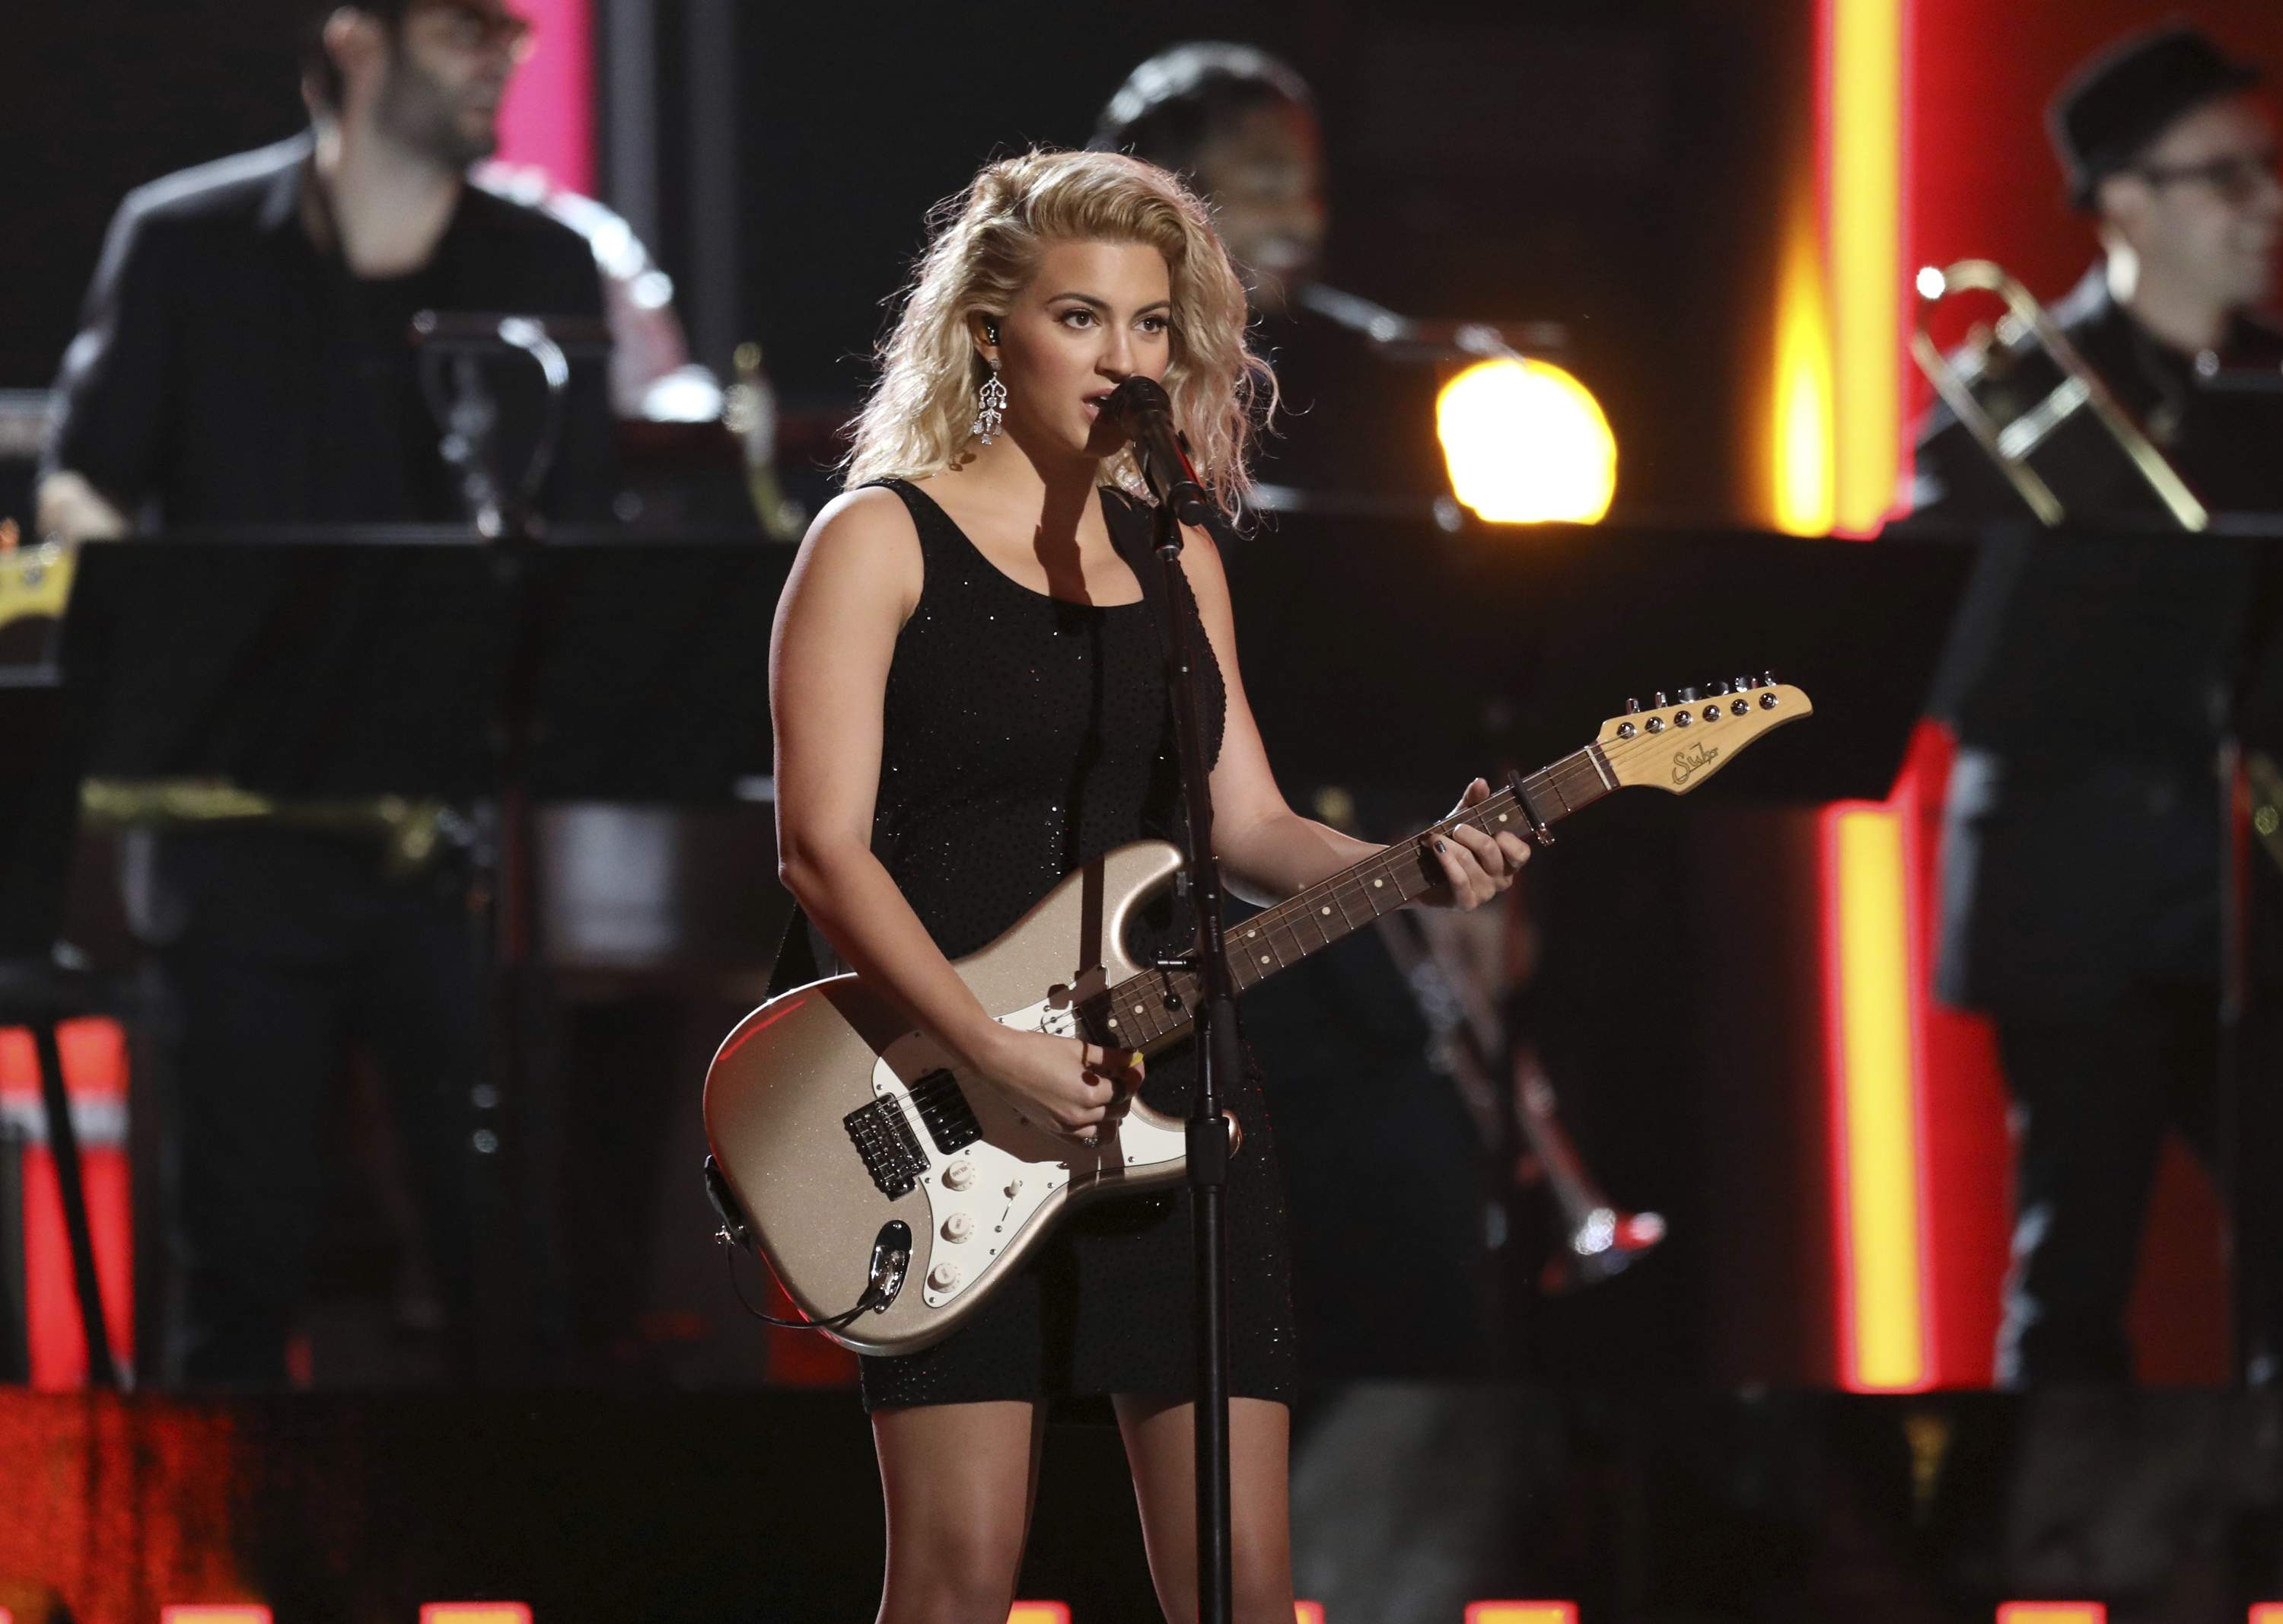 Tori Kelly performs a tribute to the Bee Gees at the 59th annual Grammy Awards on Sunday, Feb. 12, 2017, in Los Angeles. THE ASSOCIATED PRESS